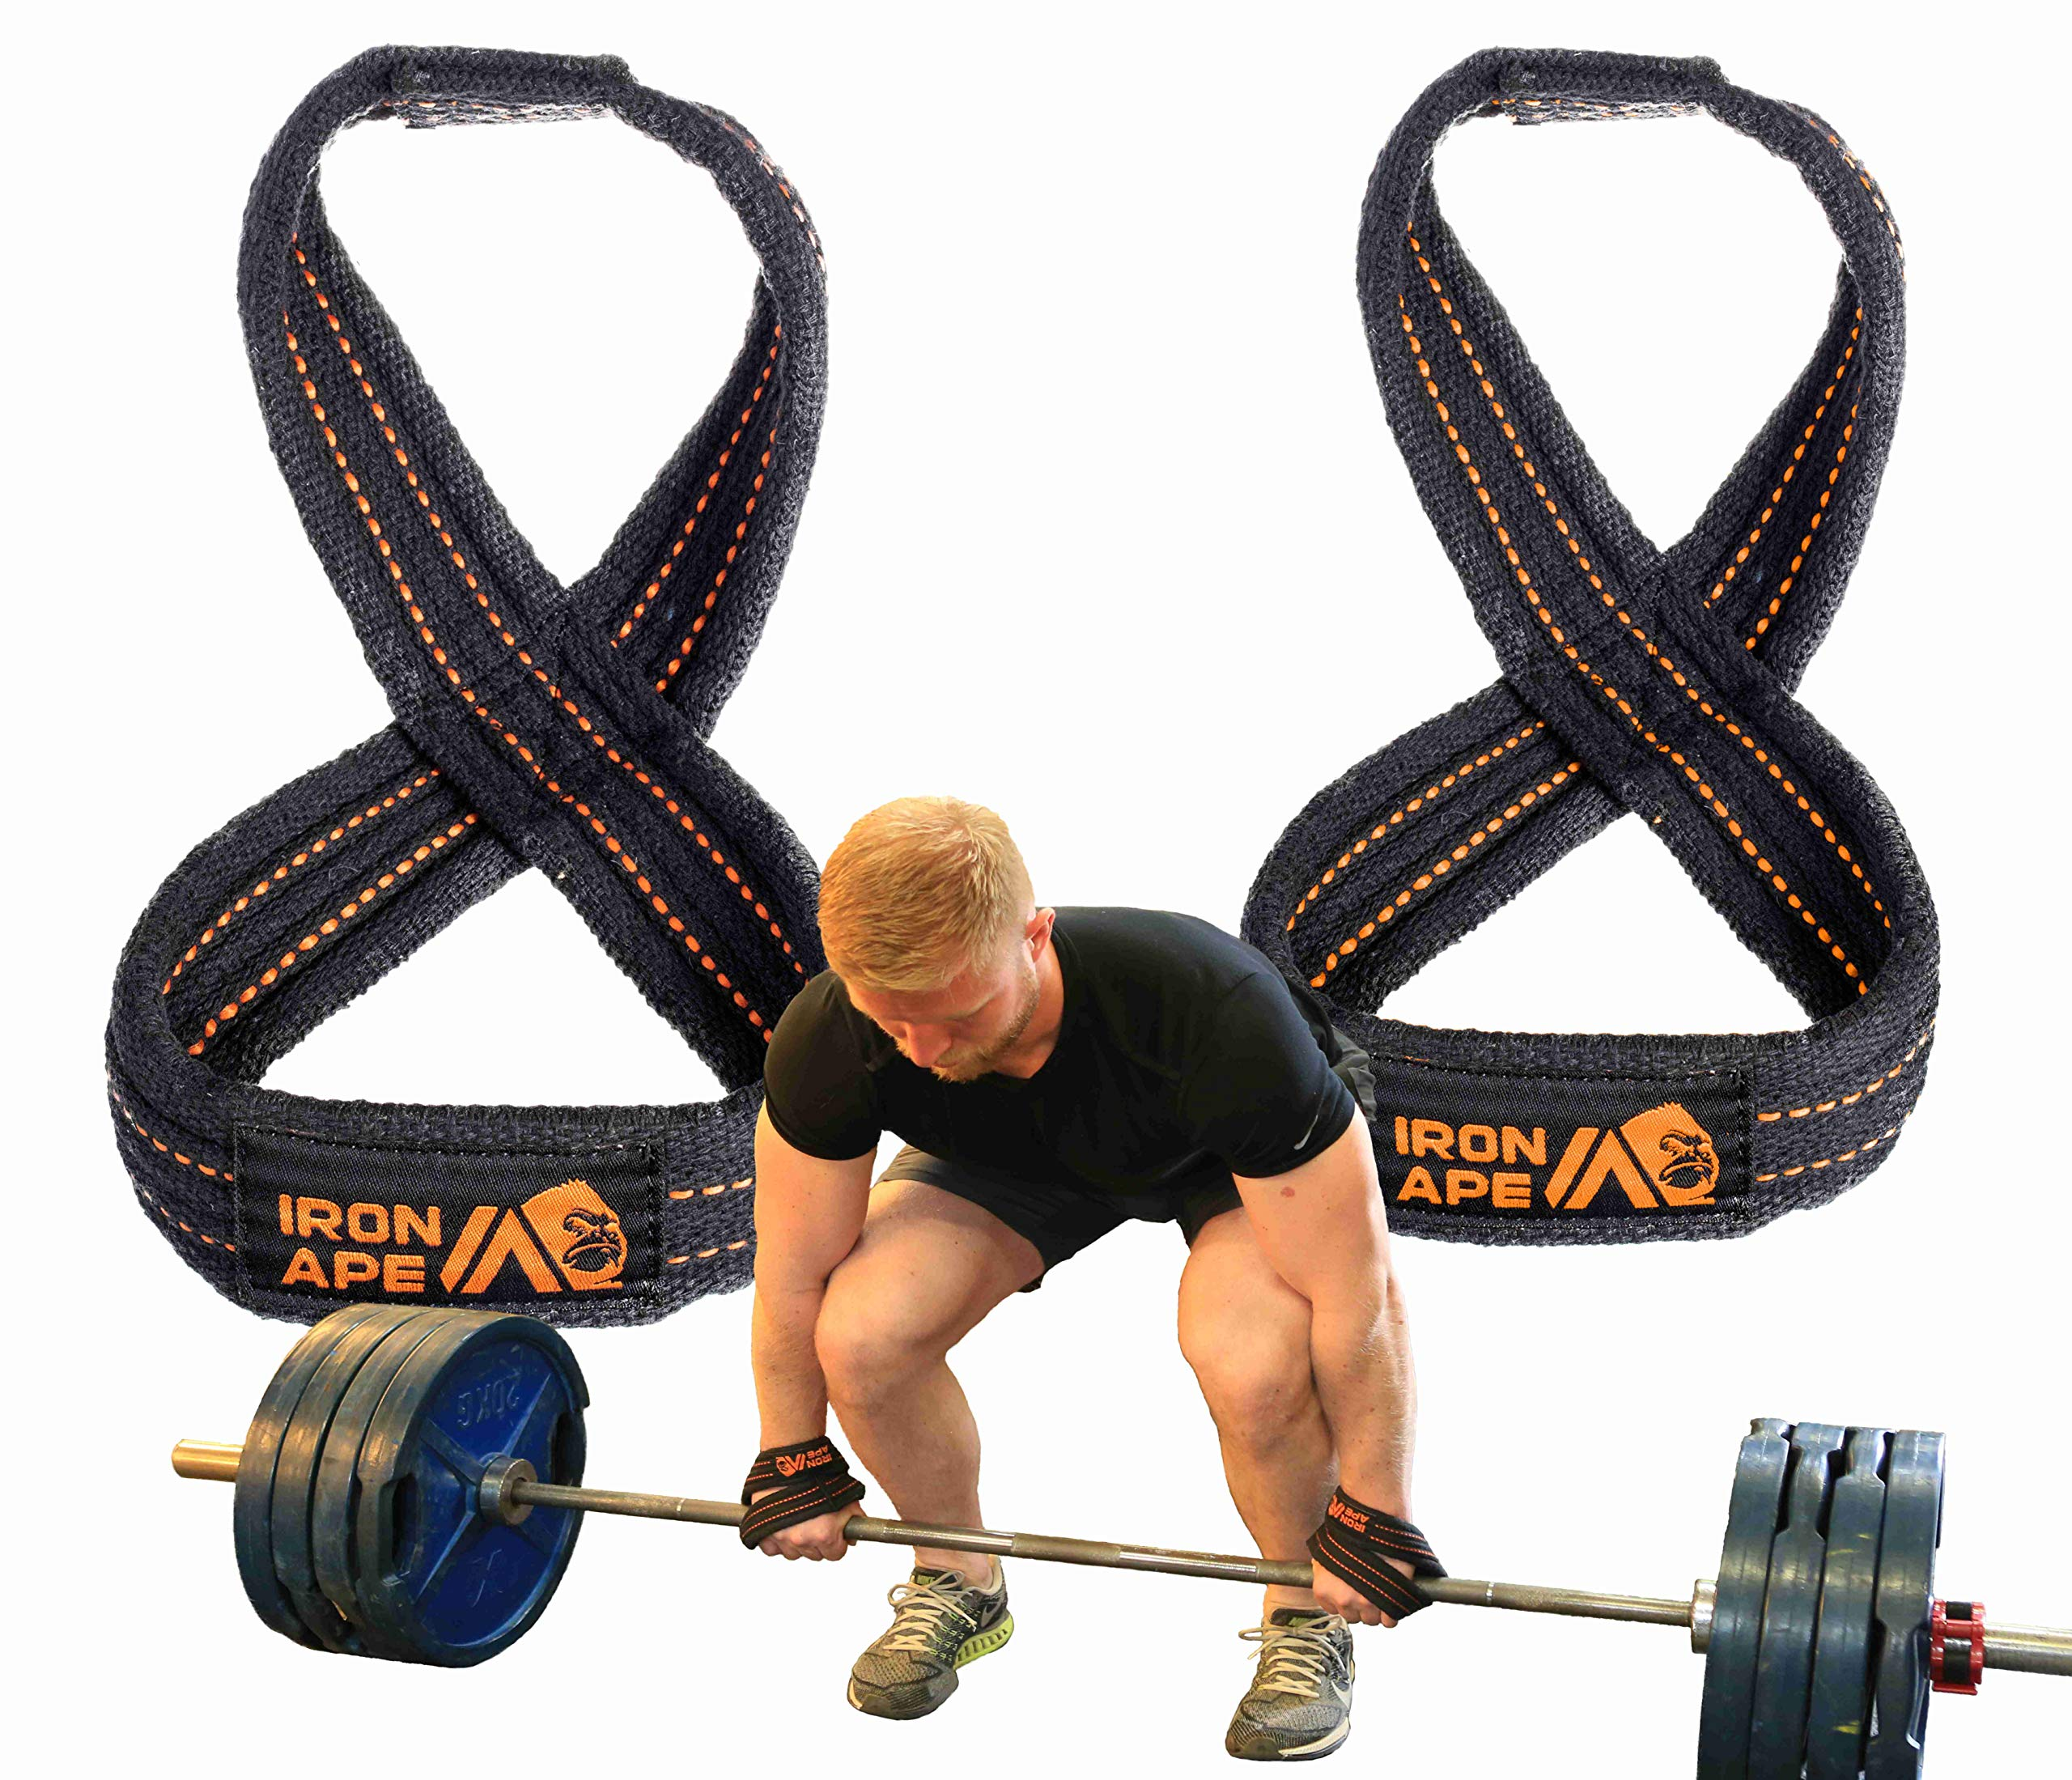 IRON APE Figure 8 Straps for Deadlift, Weight Lifting, Shrugs, and Weightlifting. Heavy Duty Cotton, 4 Sizes (XL)